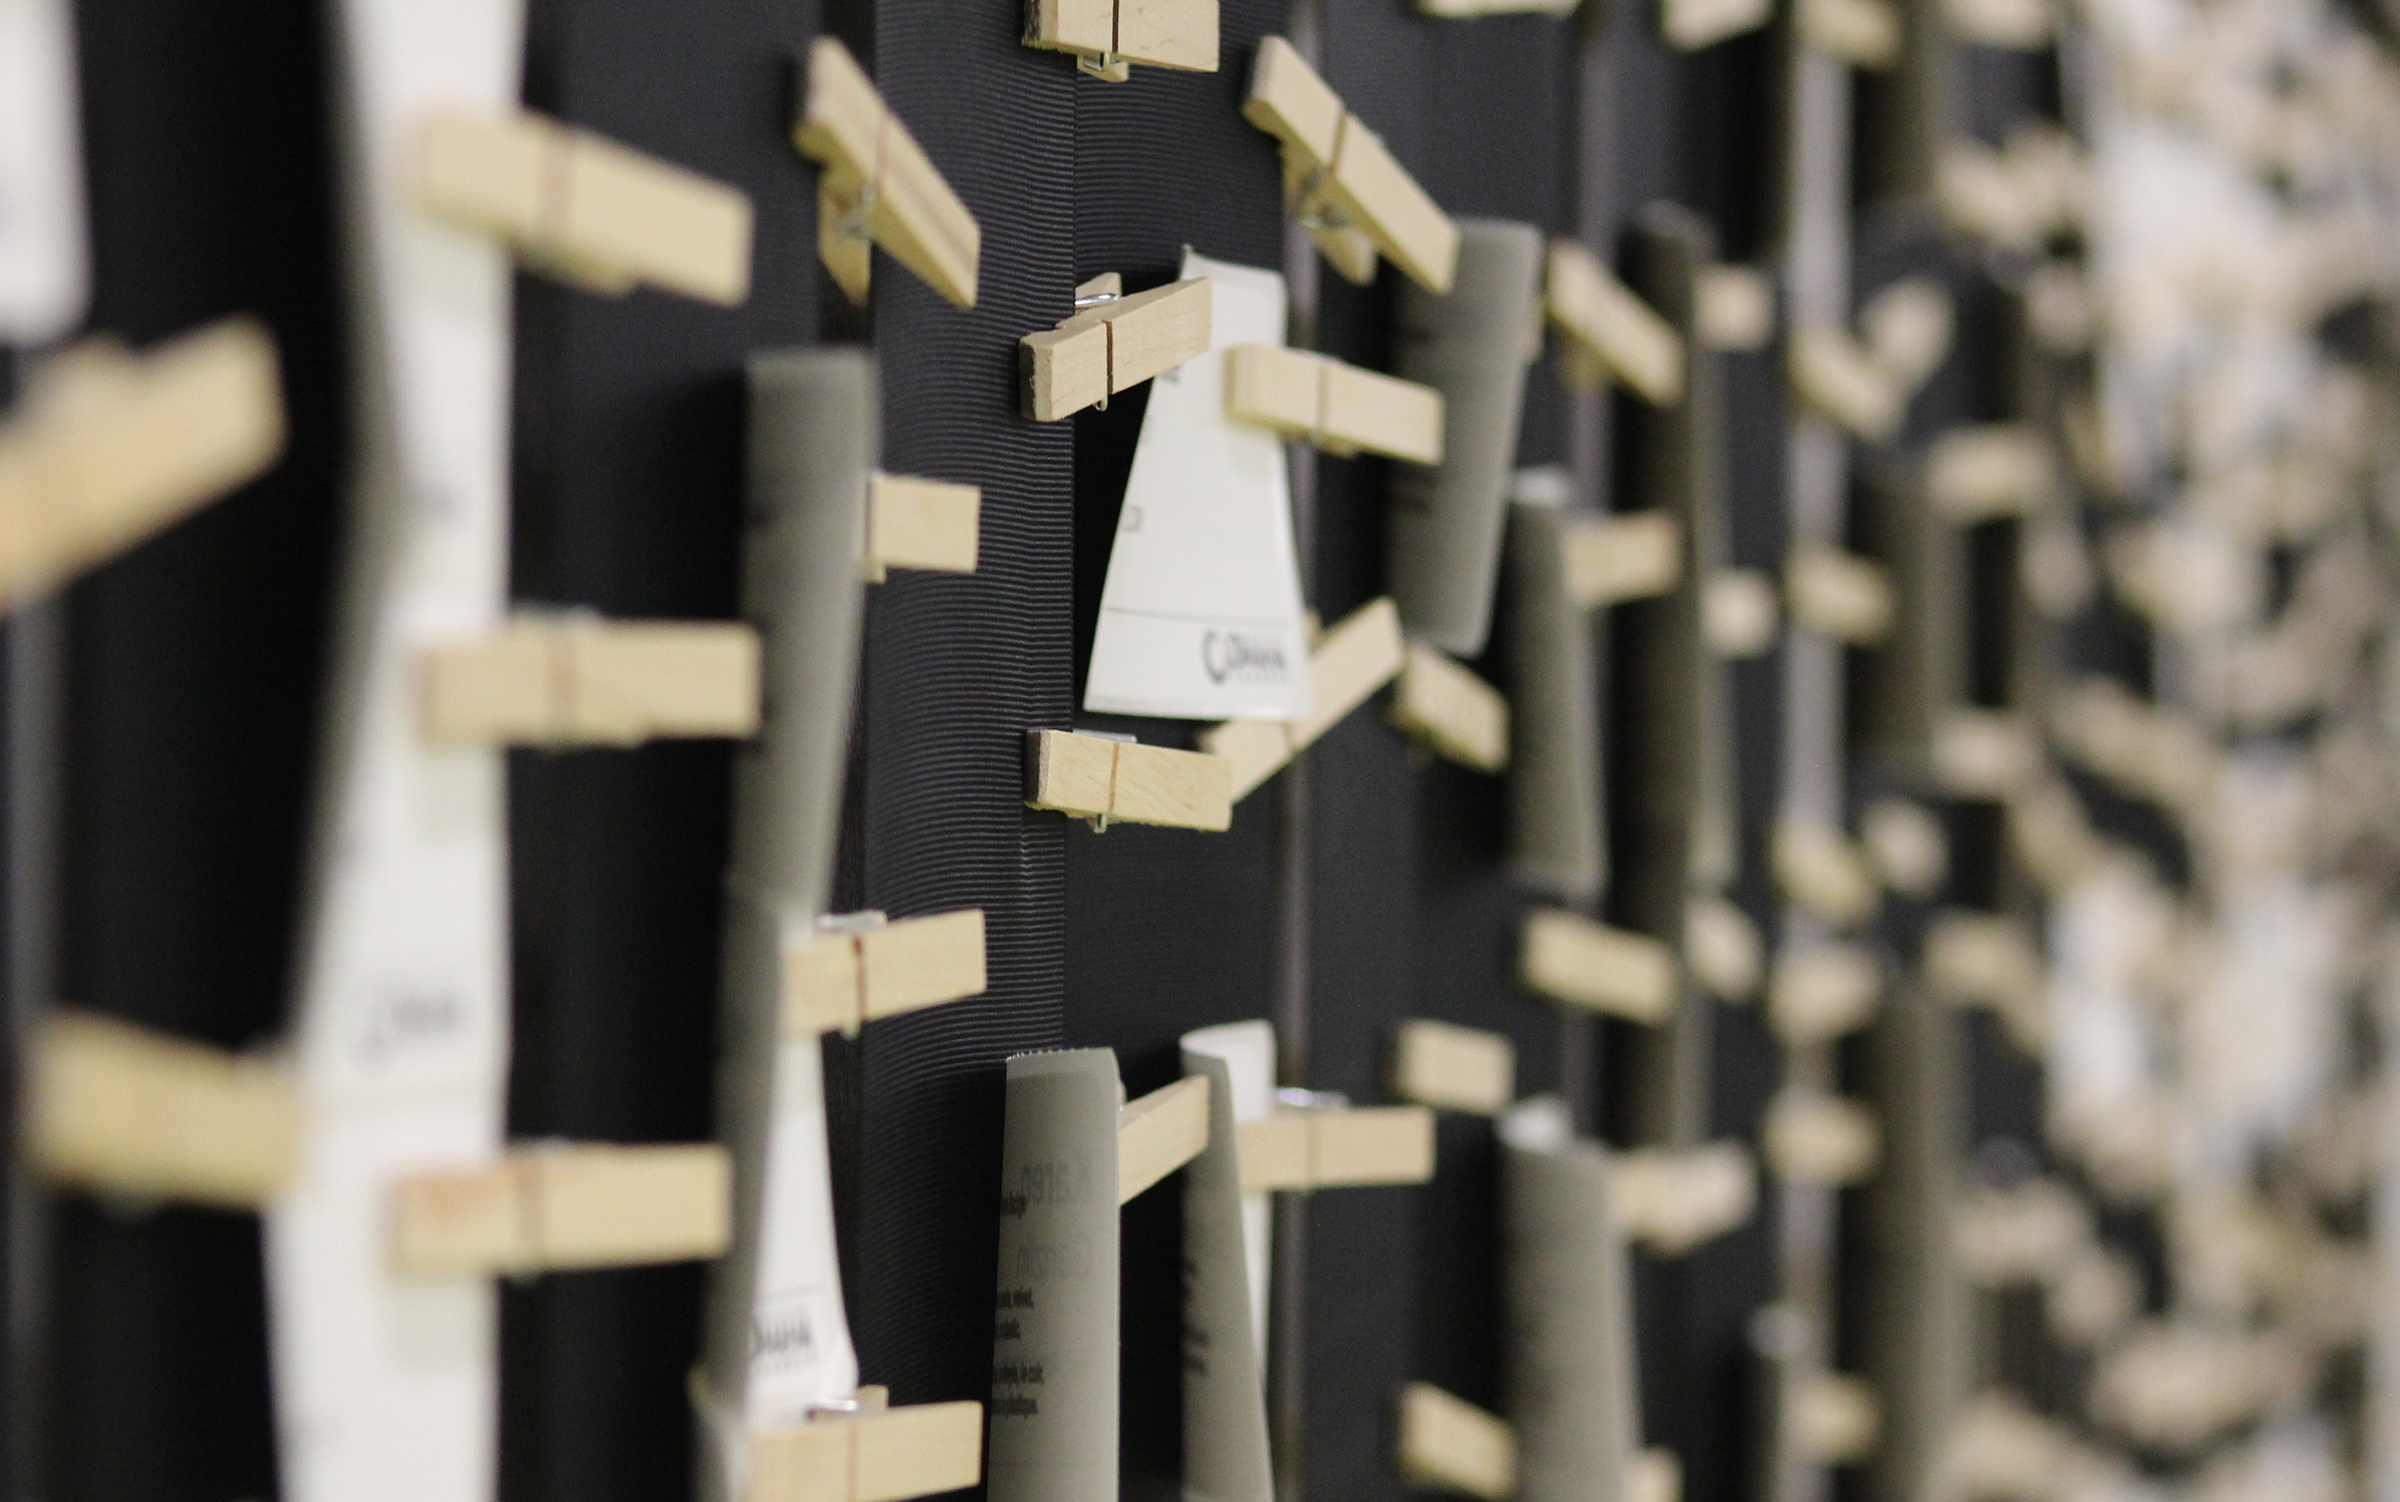 Columns of name tags were affixed to a wall using cloth pins at the Greater Omaha Chamber offices on Thursday, Dec. 5, 2019. (Photo by Scott Stewart)